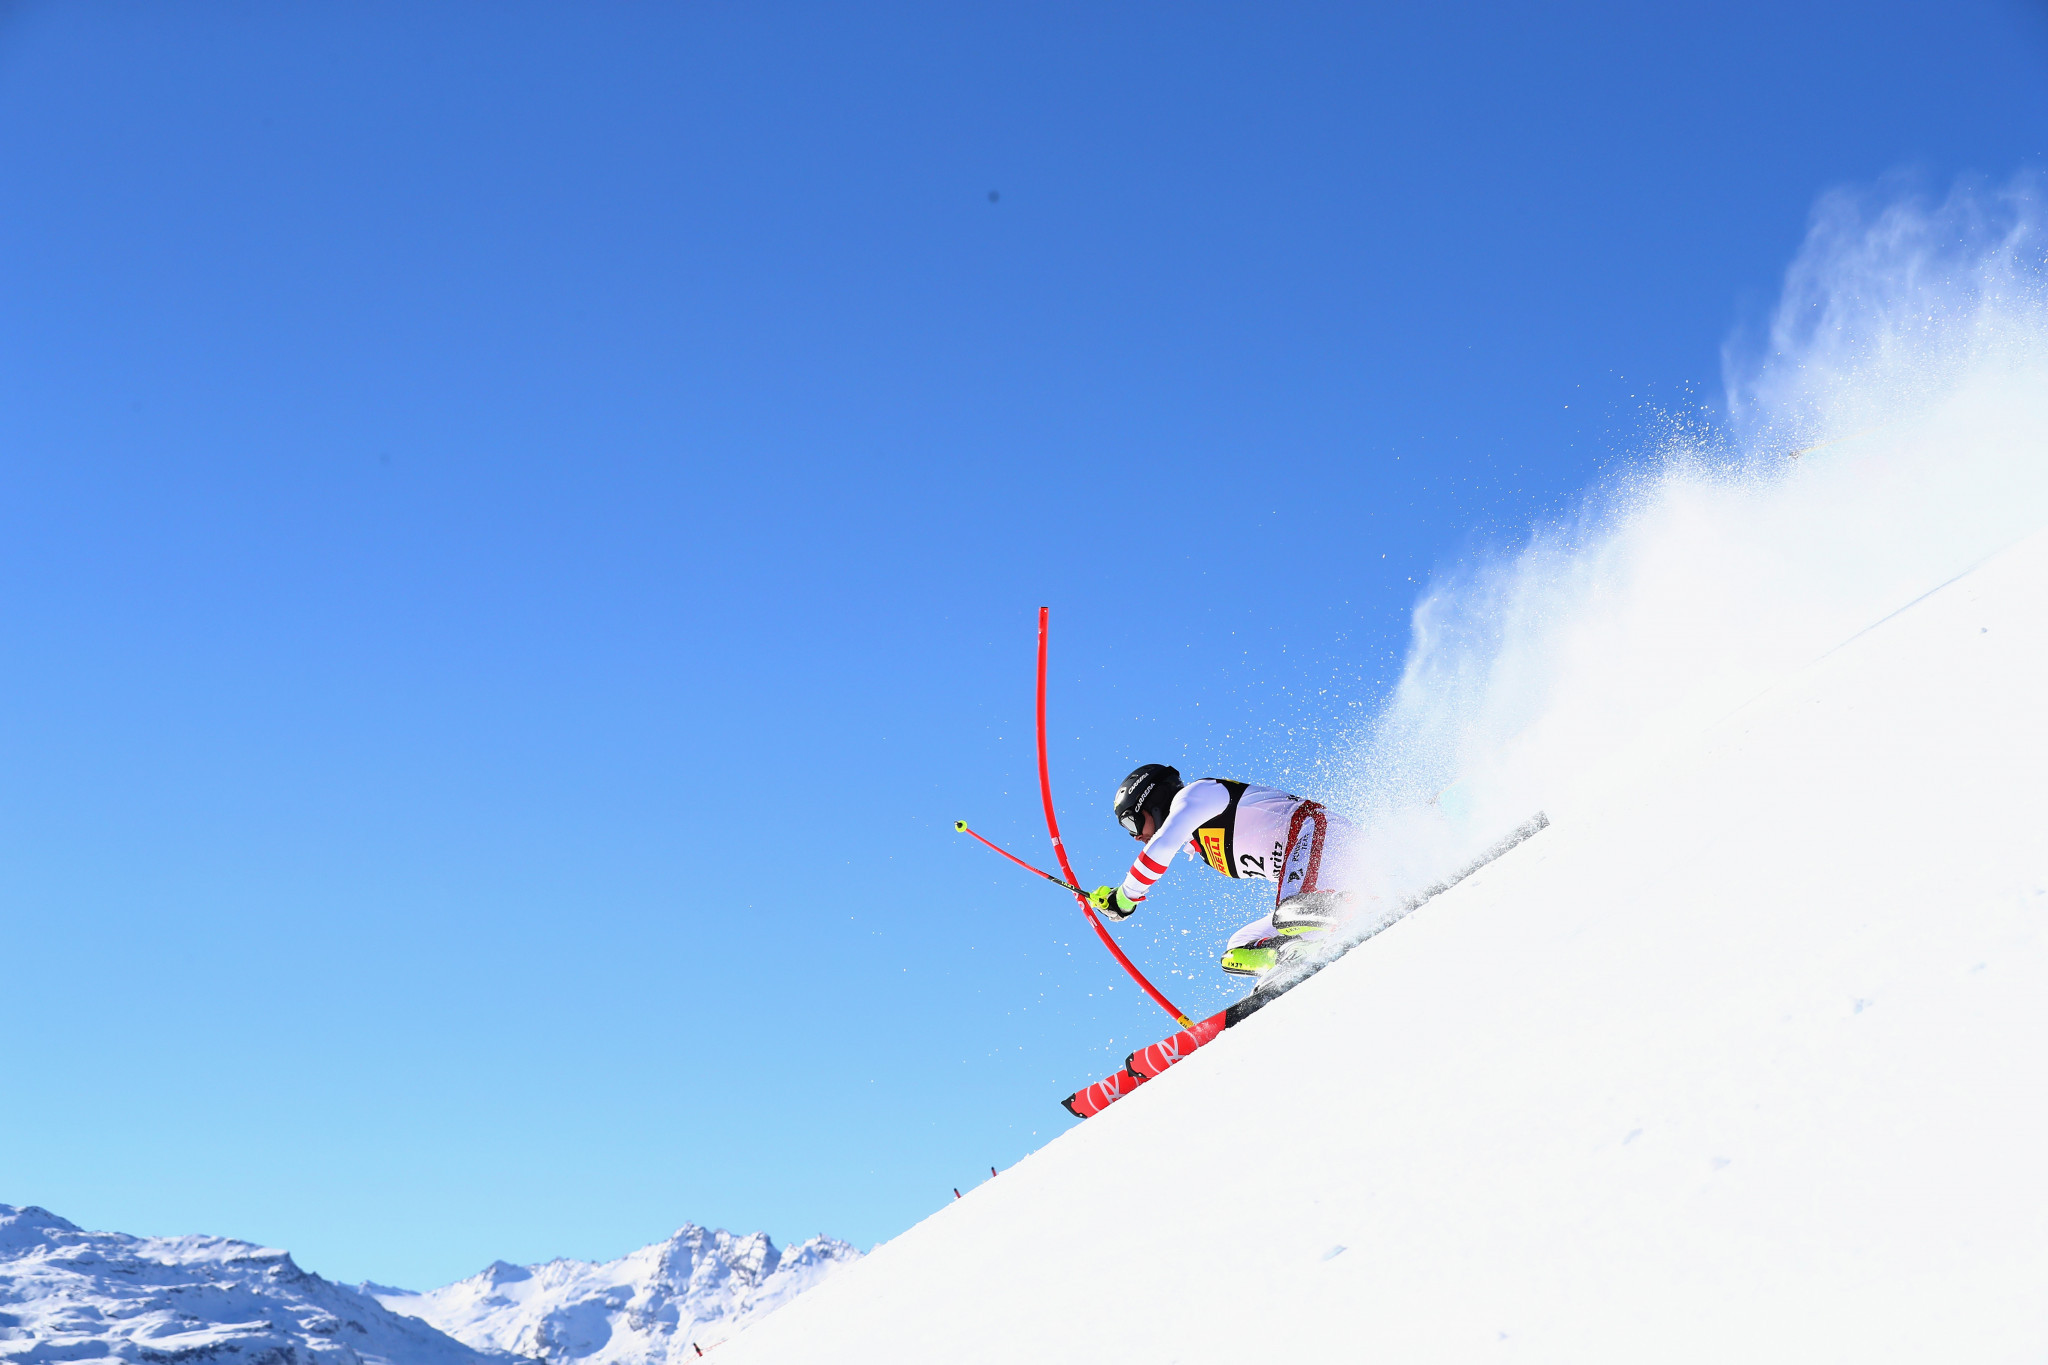 Alpine Skiing World Cup season set to continue in St Moritz